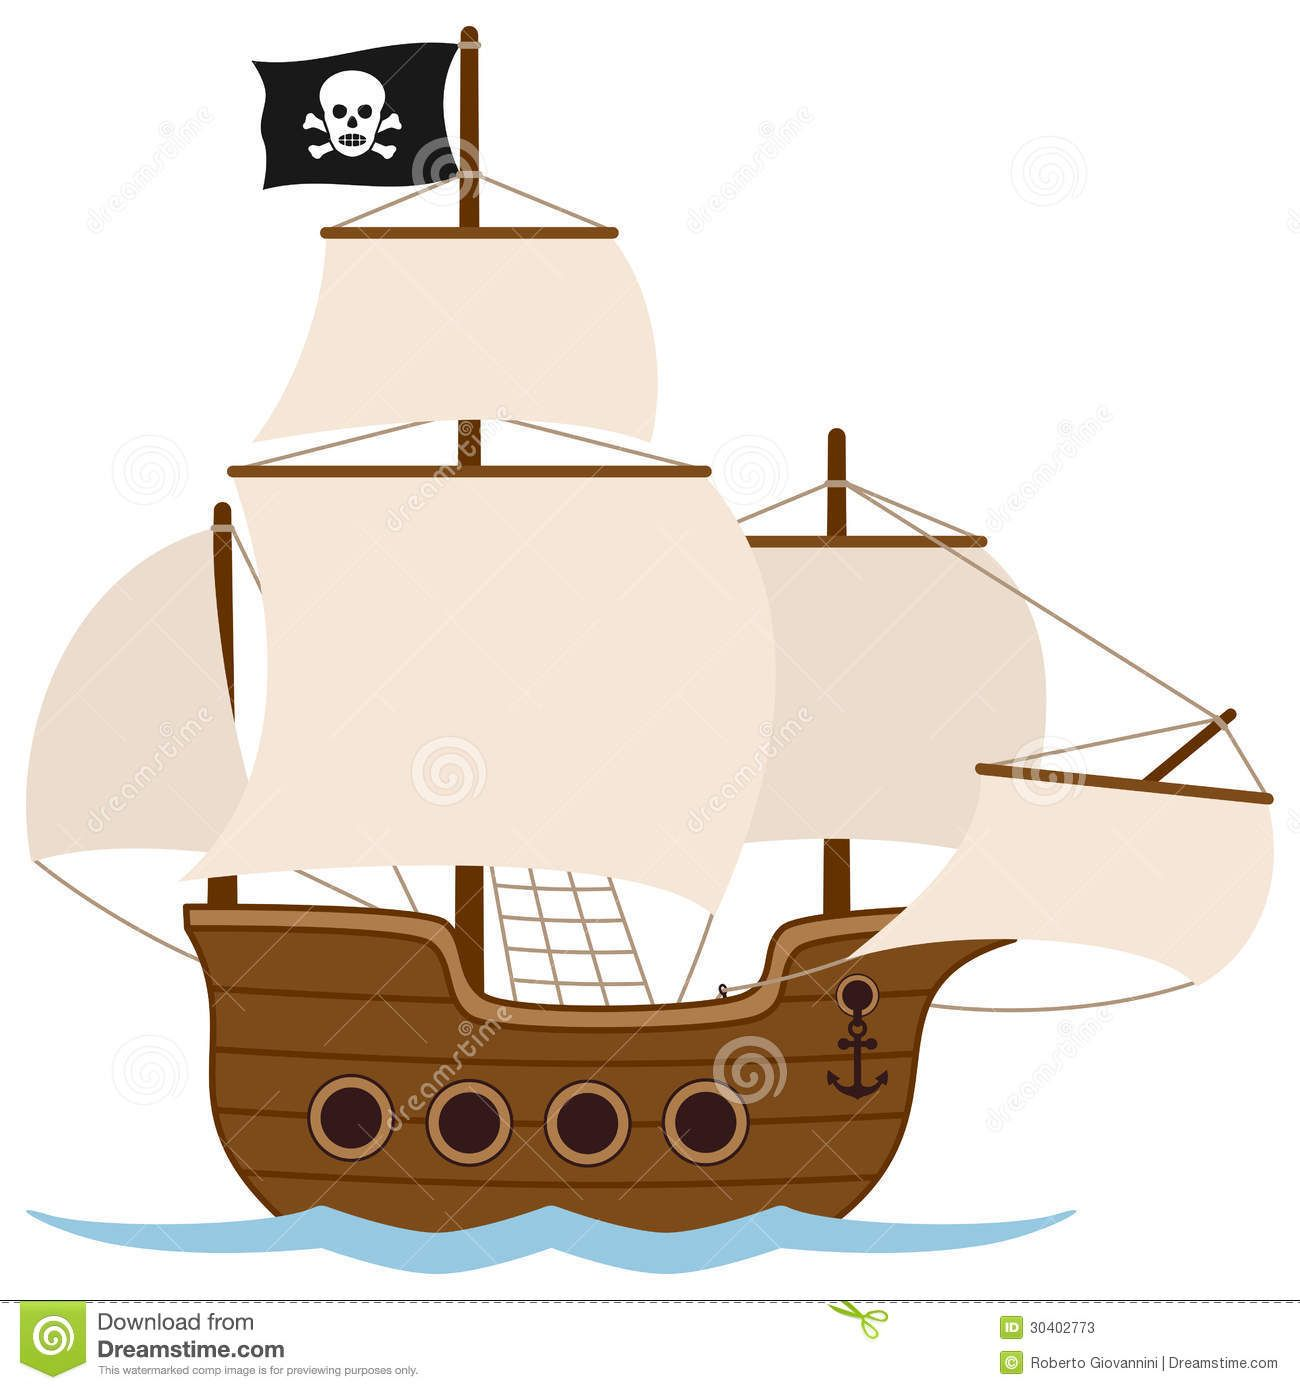 https thumbs dreamstime com z pirate ship sailing boat old